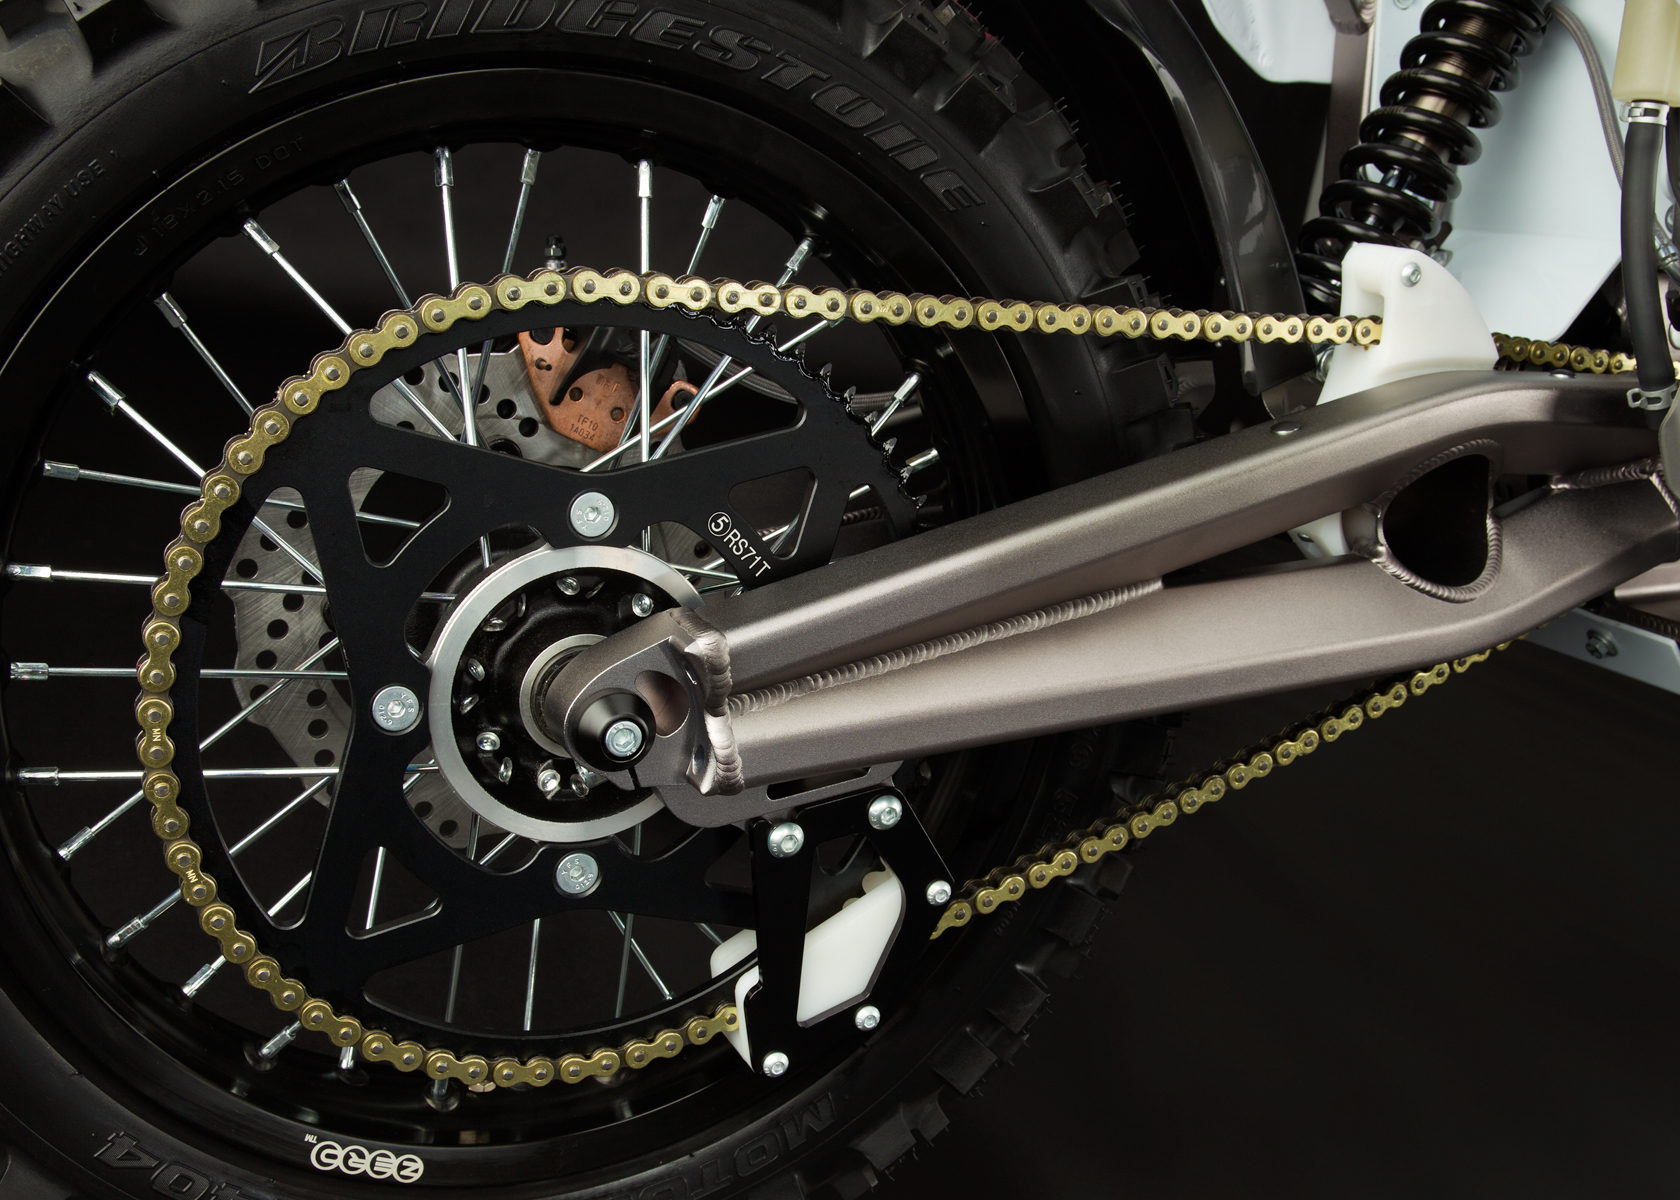 '.2012 Zero MX Electric Motorcycle: Swingarm.'